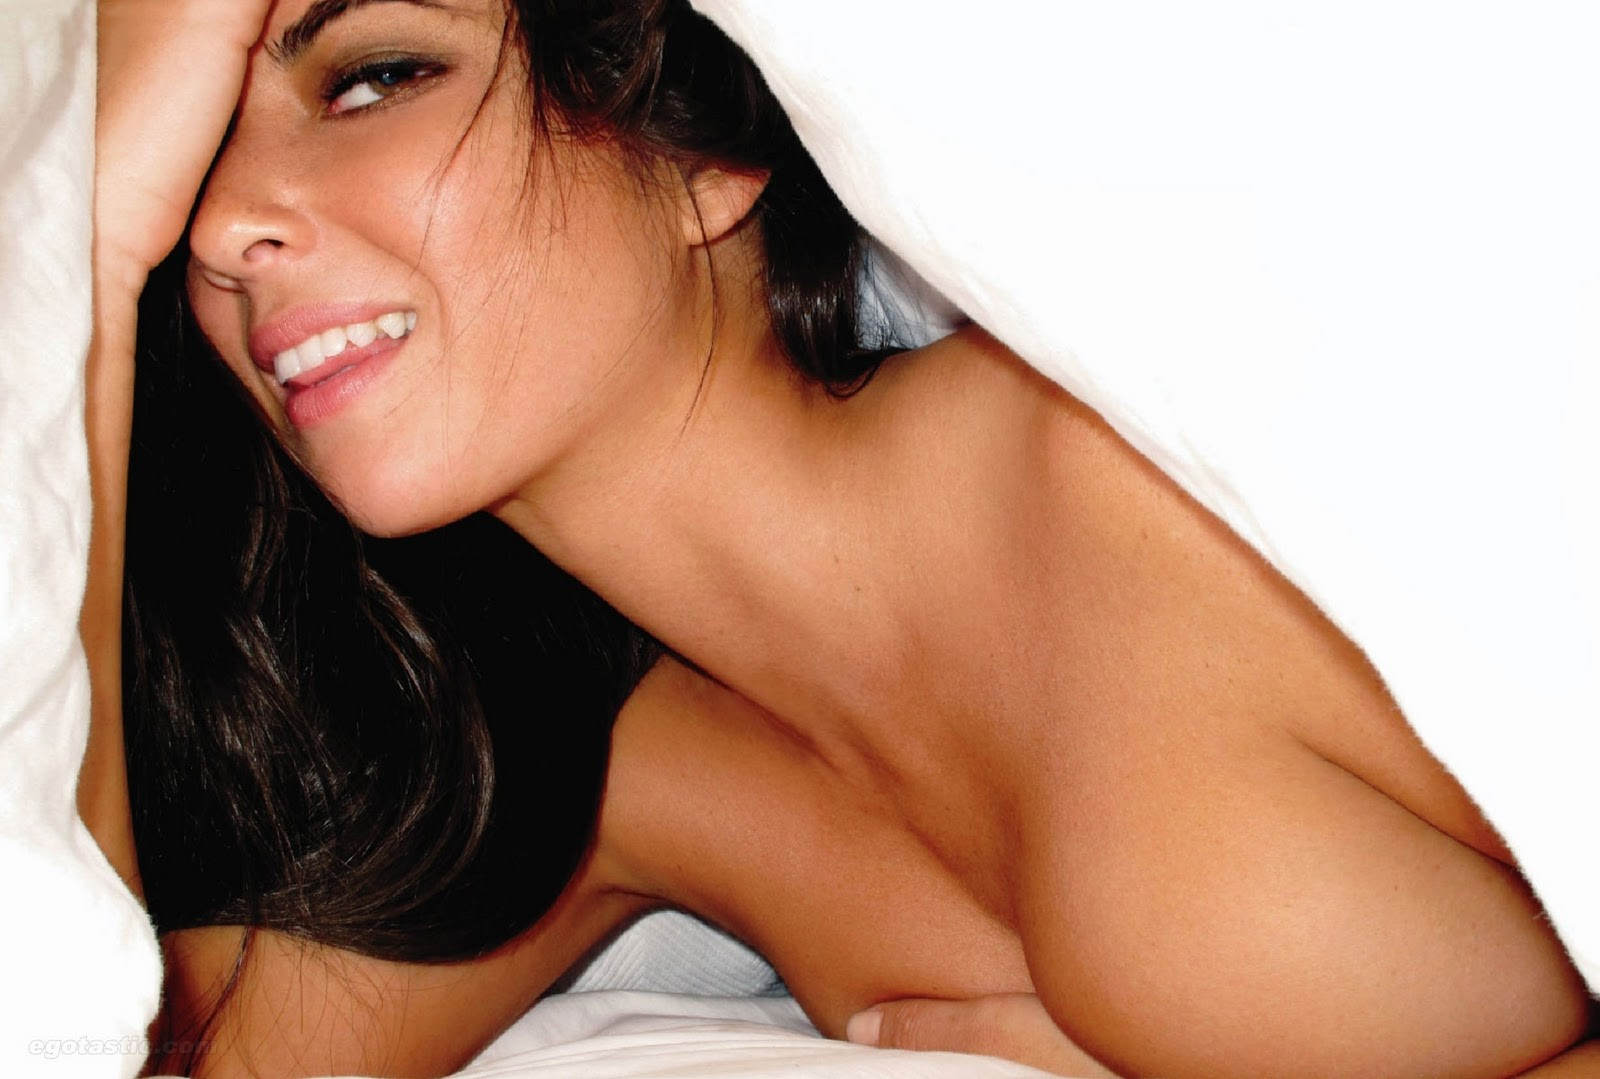 olivia-munn-nude-in-playboy